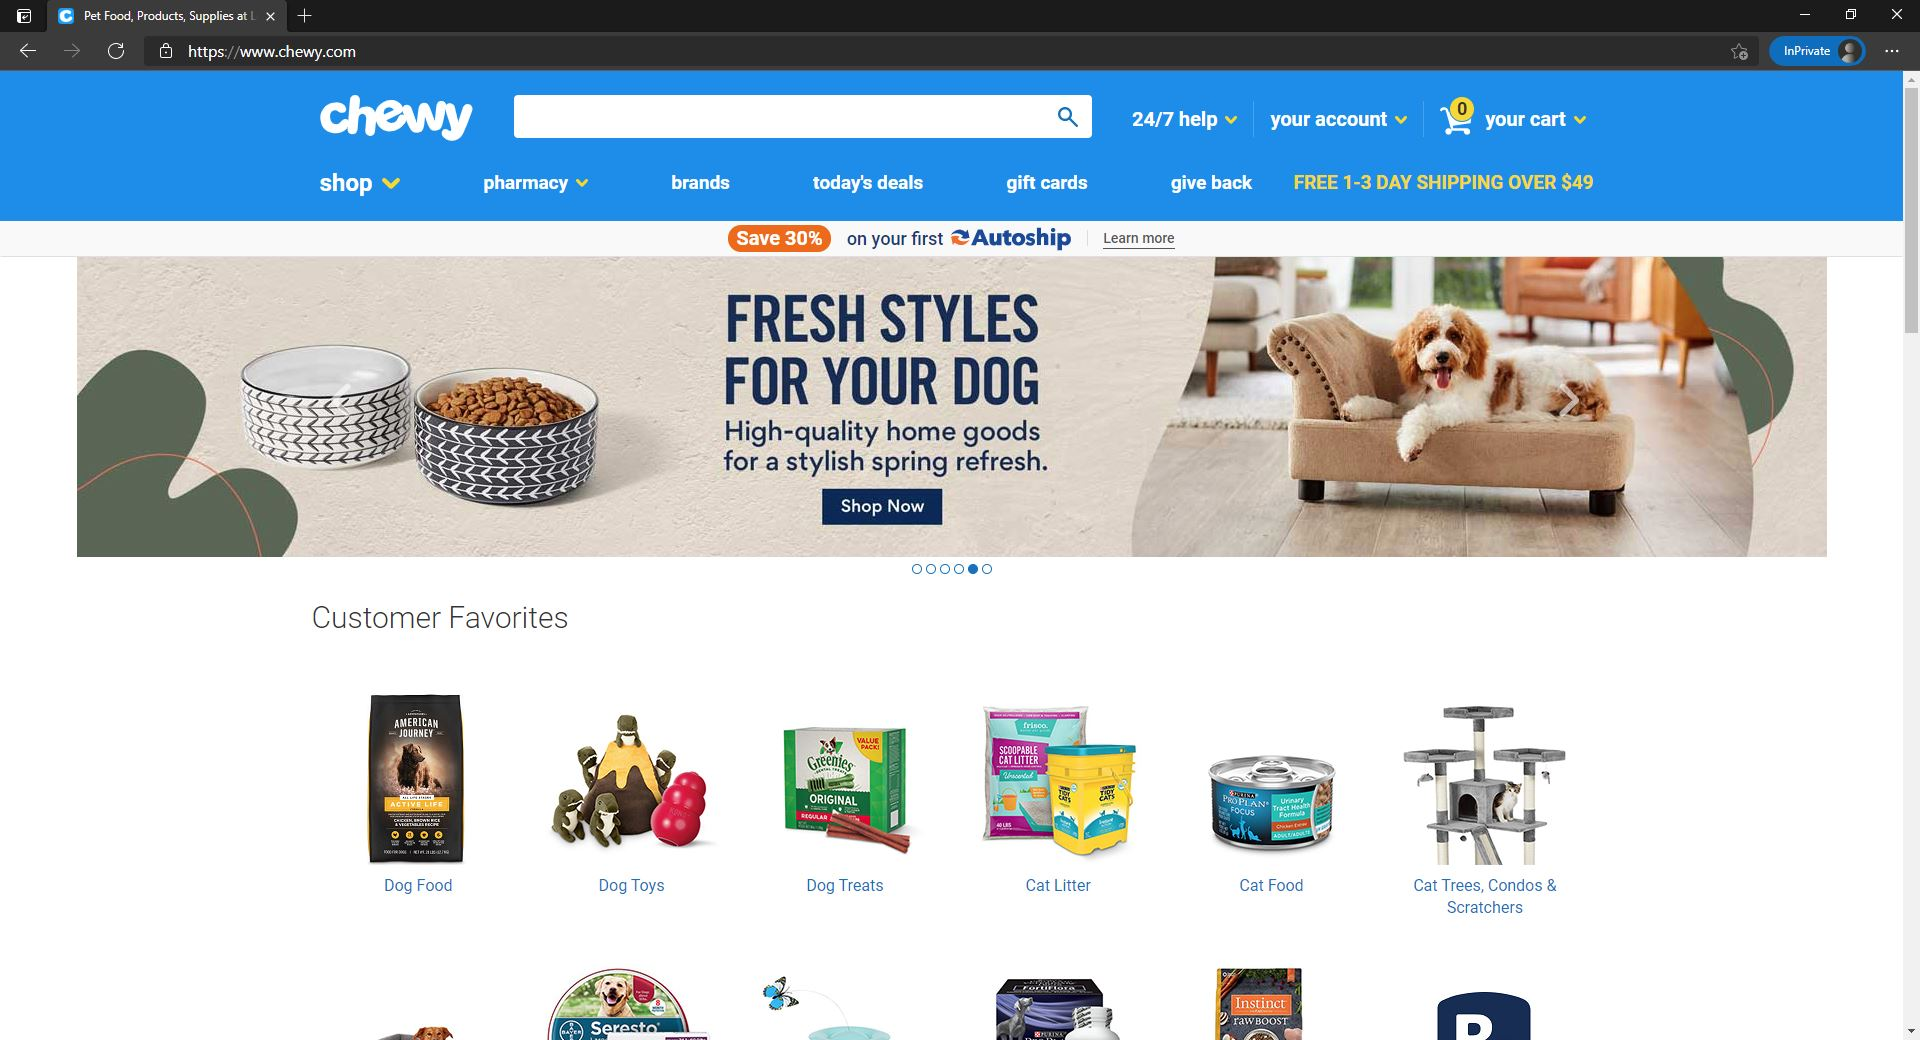 Chewy website homepage